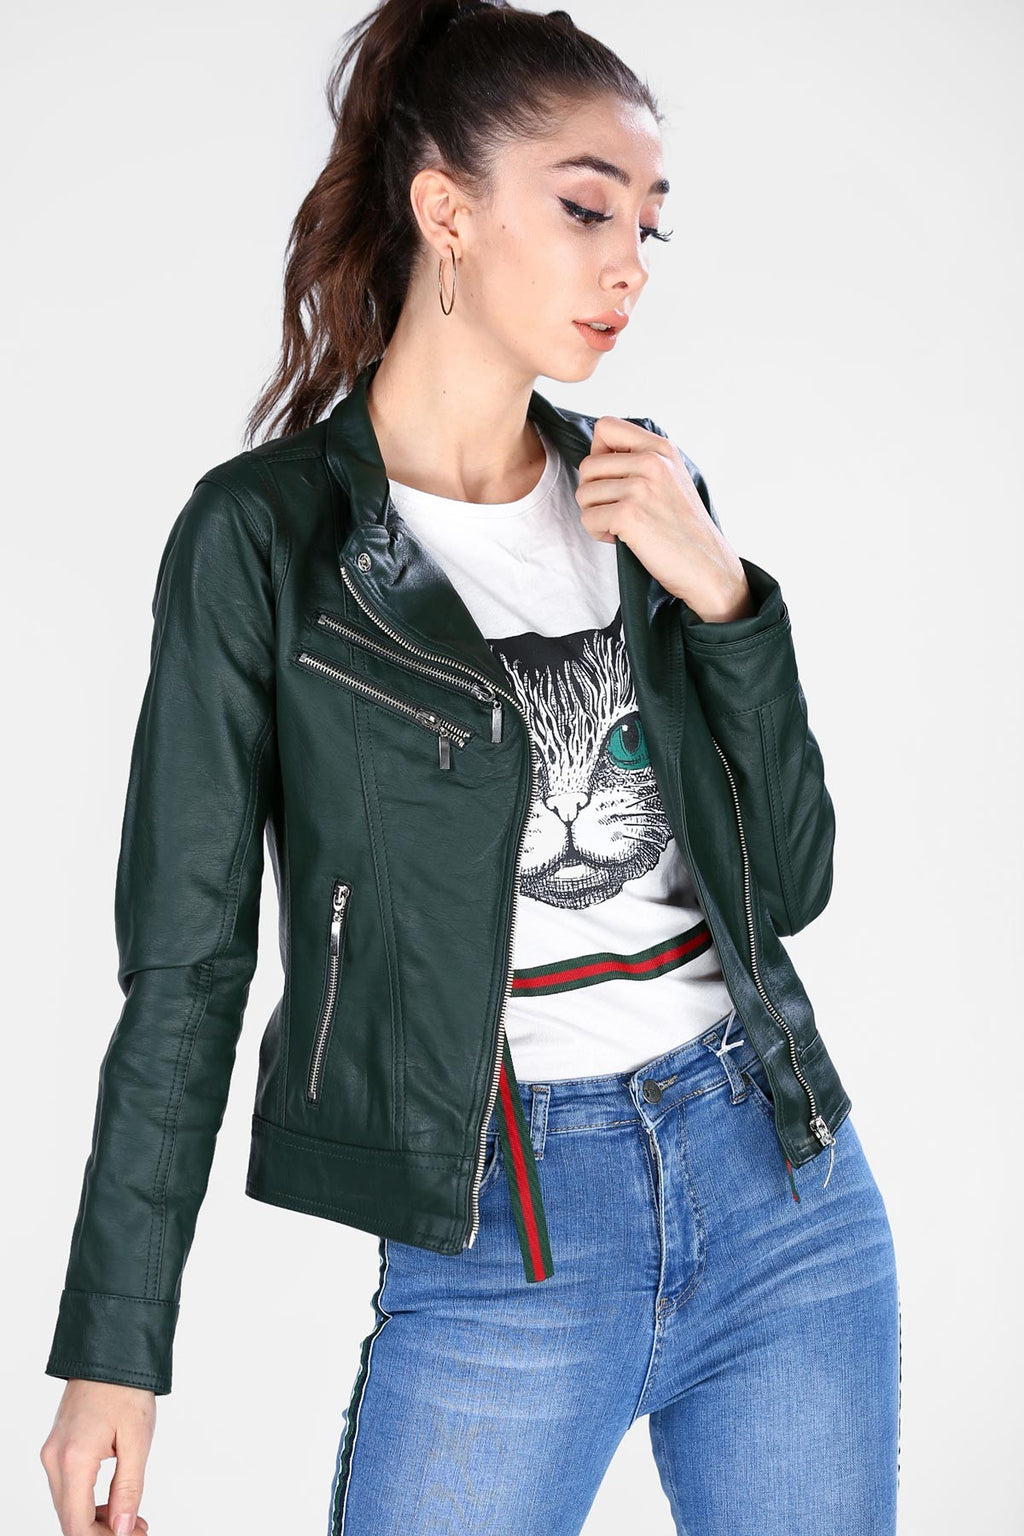 Copy of Women's Zipped Sides Leather Green Jacket (contest) - THE UNIQUE FIT